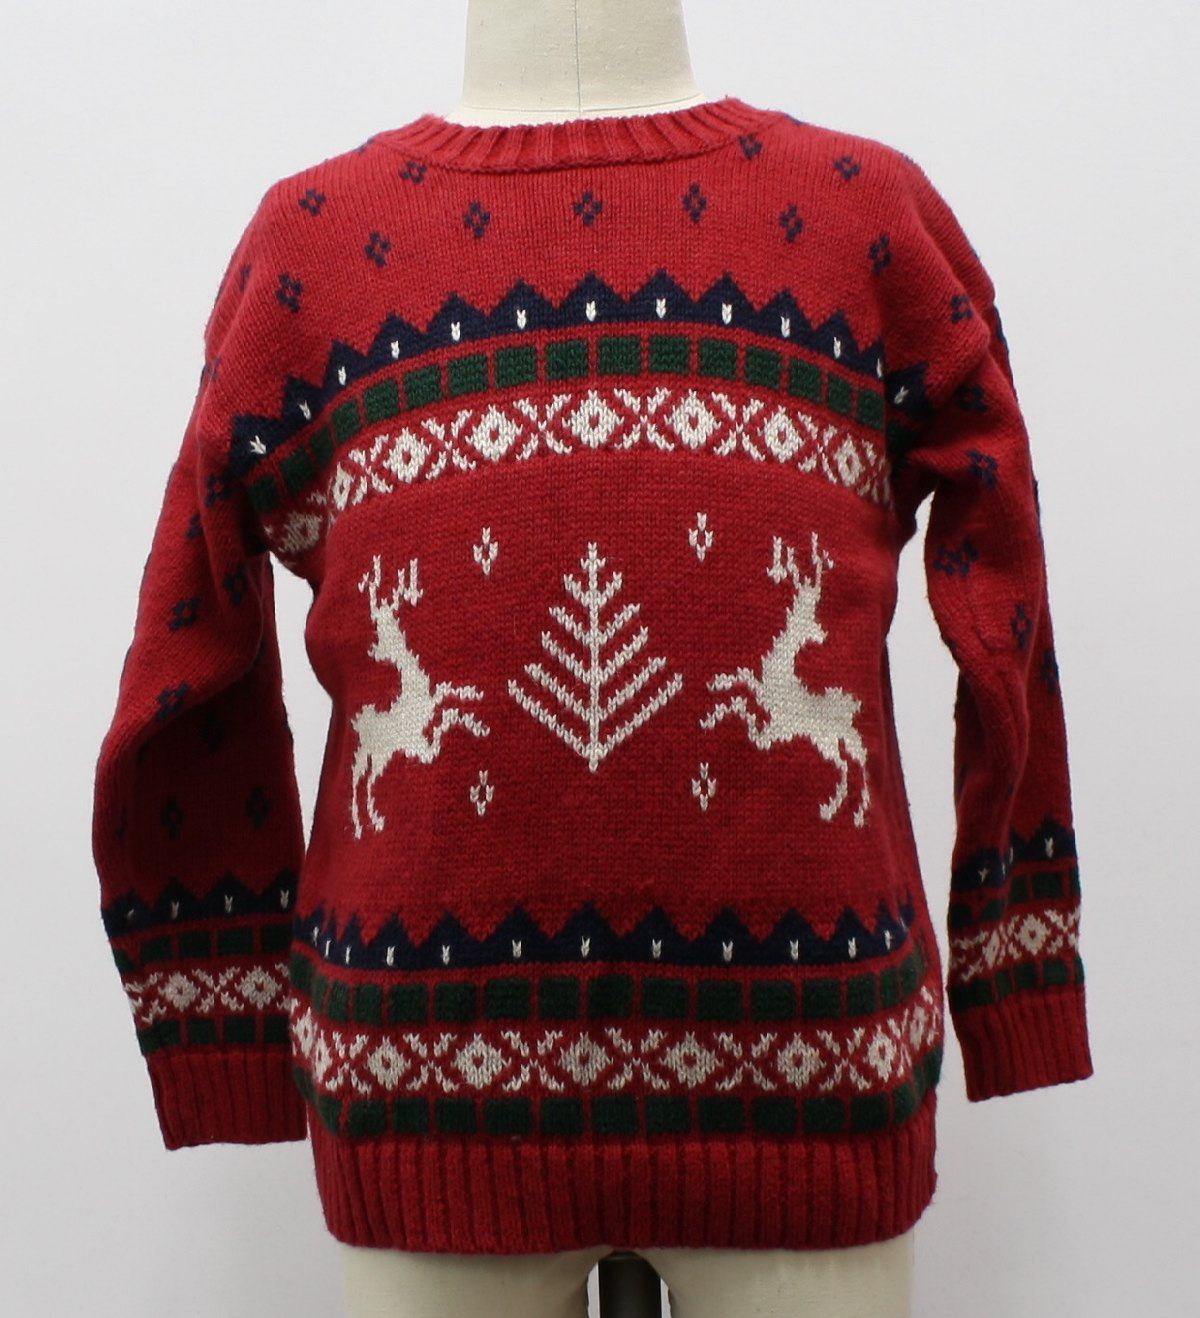 Great Guy Unisex/Childs Ugly Christmas Classic Reindeer Sweater $28.00 Not in stock. Item No. 209315